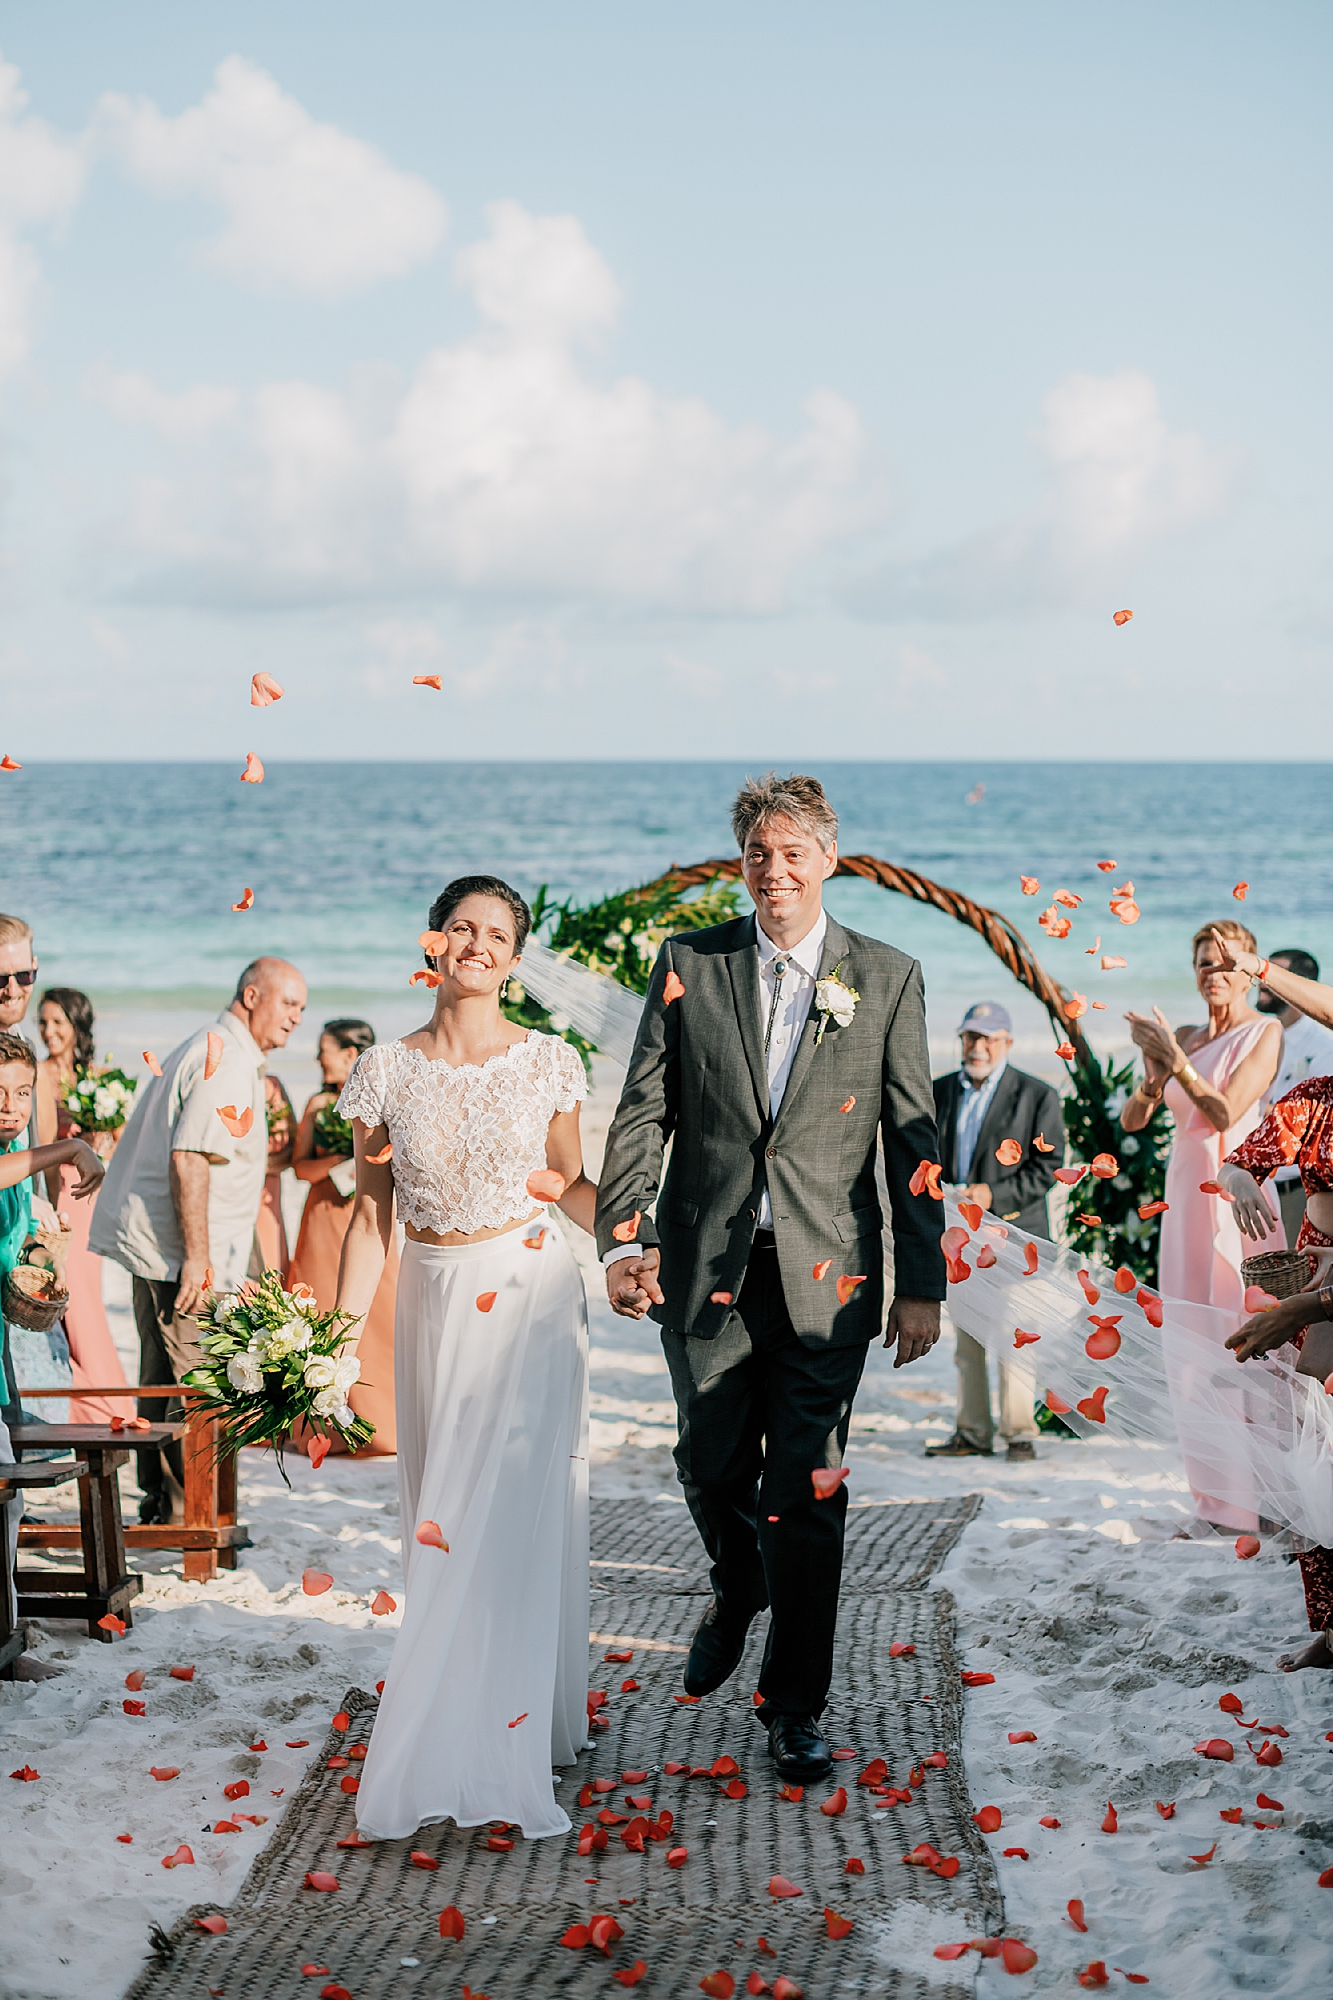 Stylish and Candid Destination Film Wedding Photography in Tulum Mexico by Magdalena Studios 0014